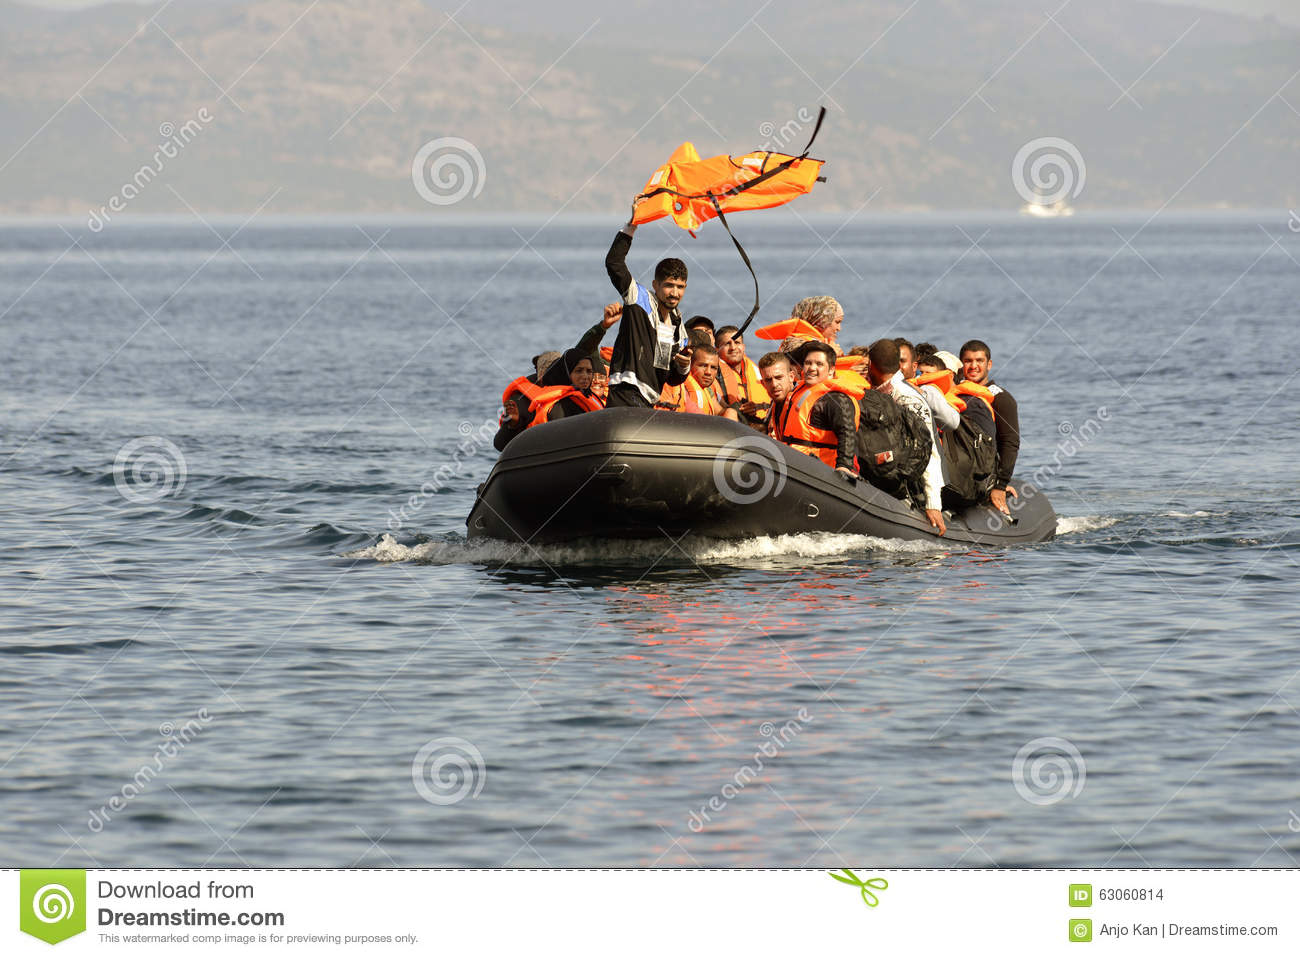 LESVOS, GREECE october 12, 2015: Refugees arriving in Greece in dingy boat from Turkey.